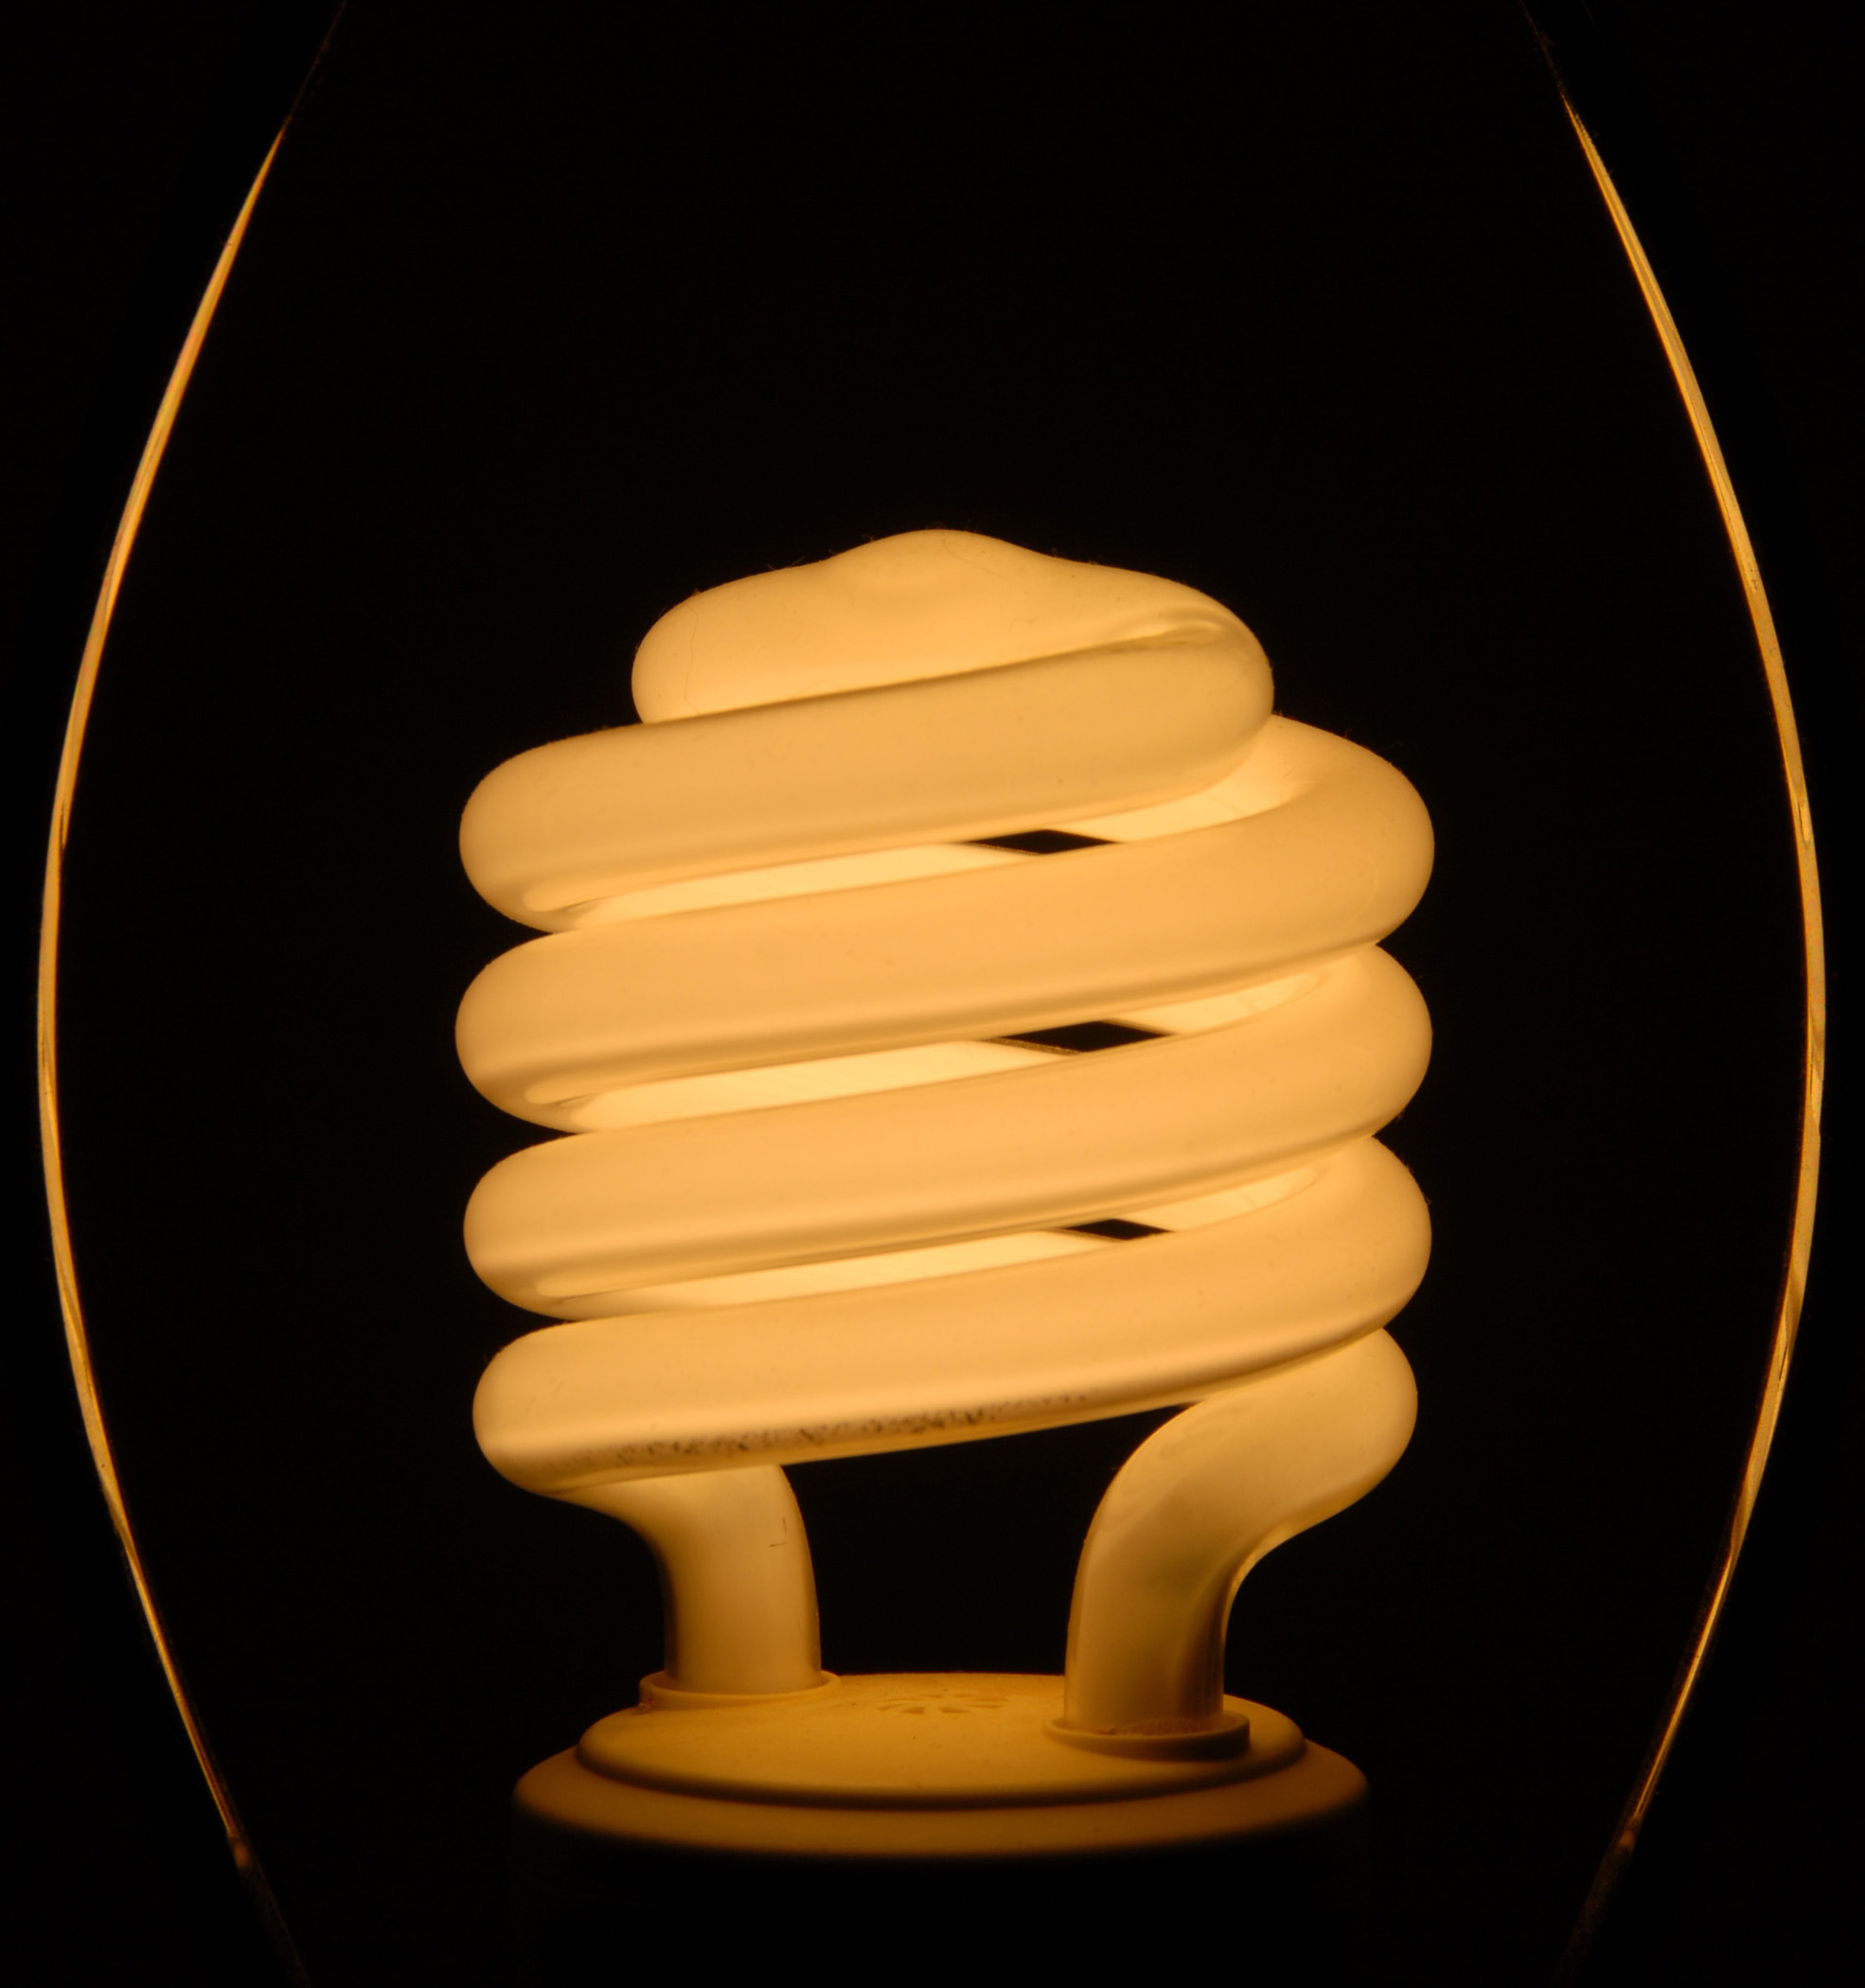 Lit compact fluorescent bulb photograph used for decorative purpose only